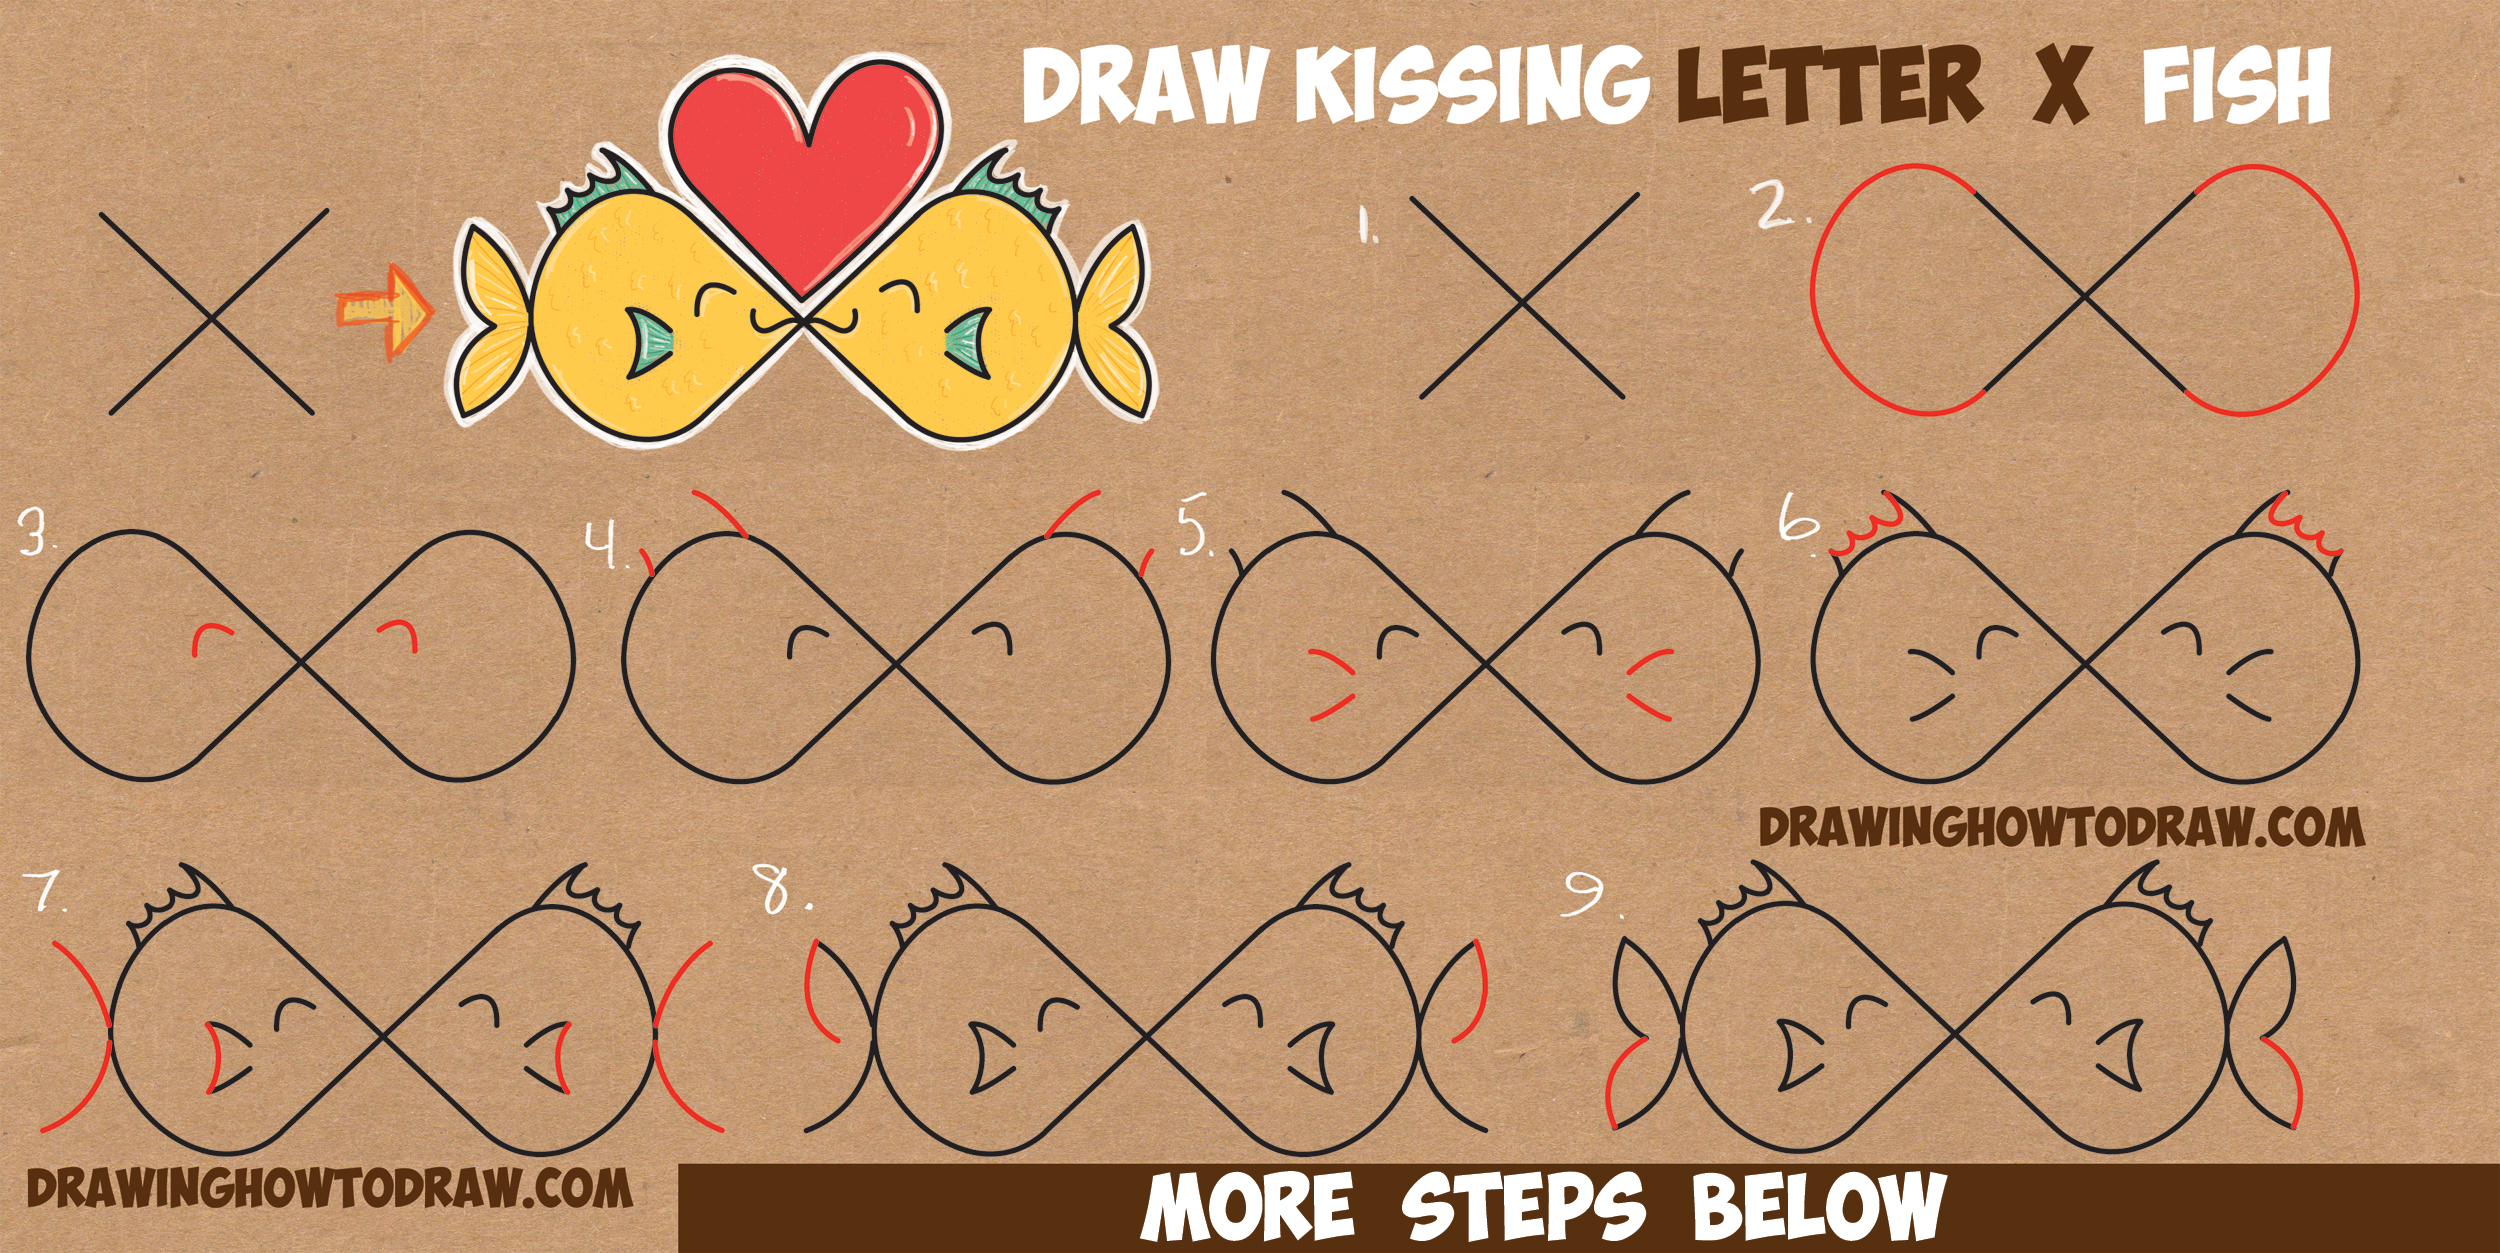 How to Draw Cartoon Fish Kissing from the Letter 'X' in Easy Step by Step Drawing Tutorial for Kids